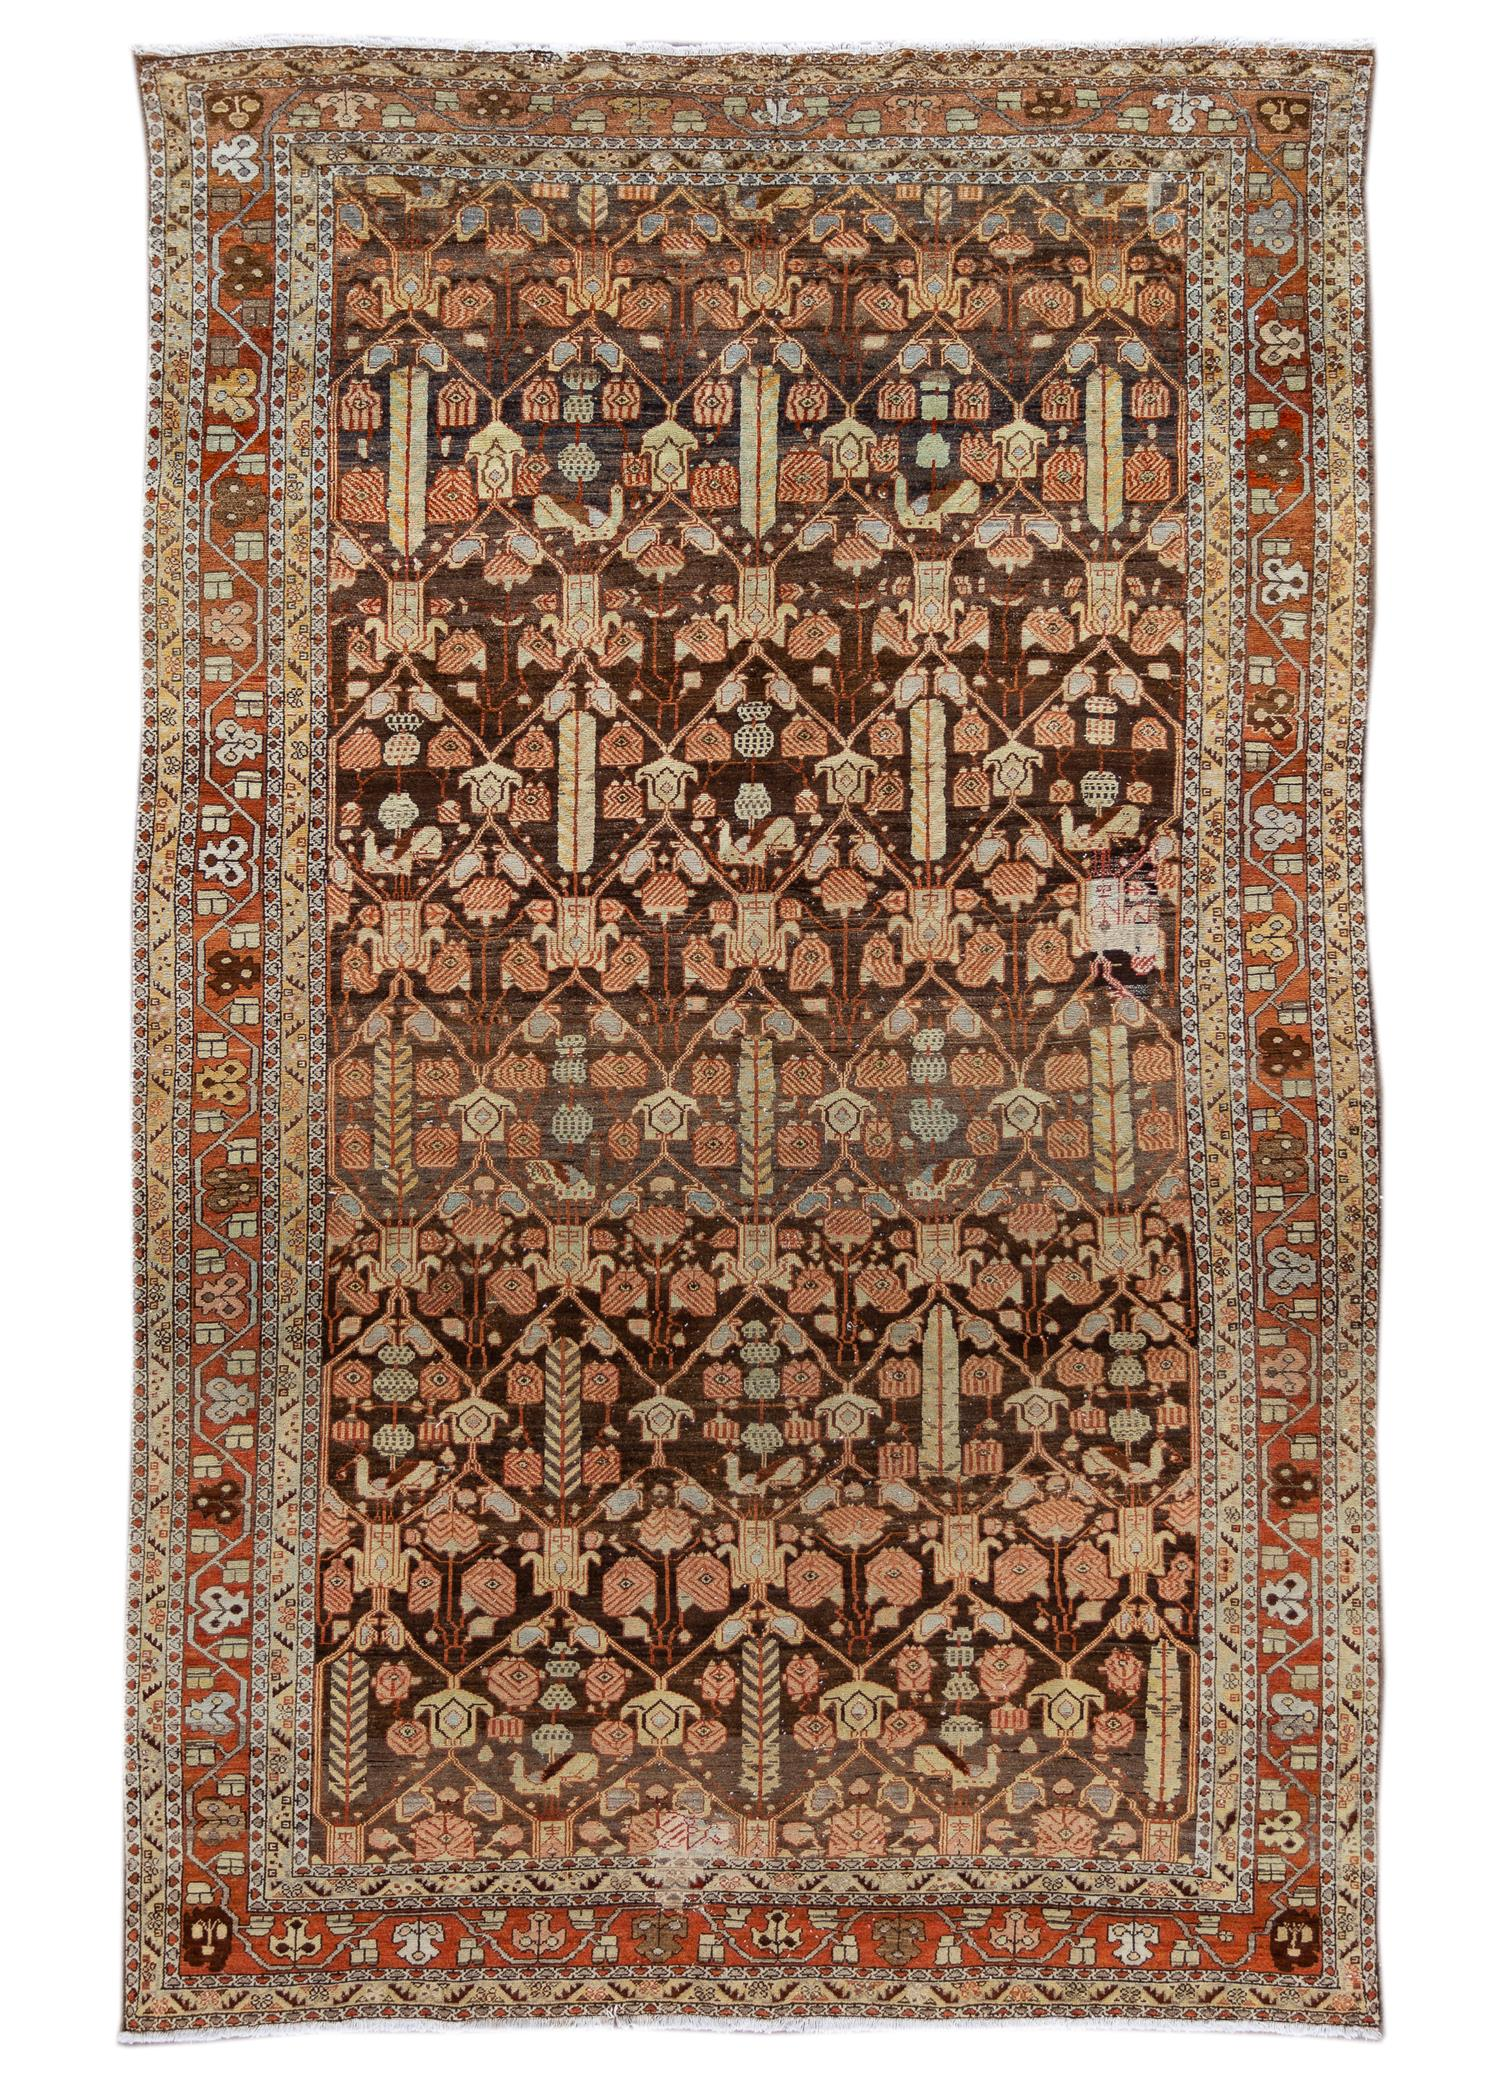 Antique Malayer Rug, #10235253, 8' X 12'